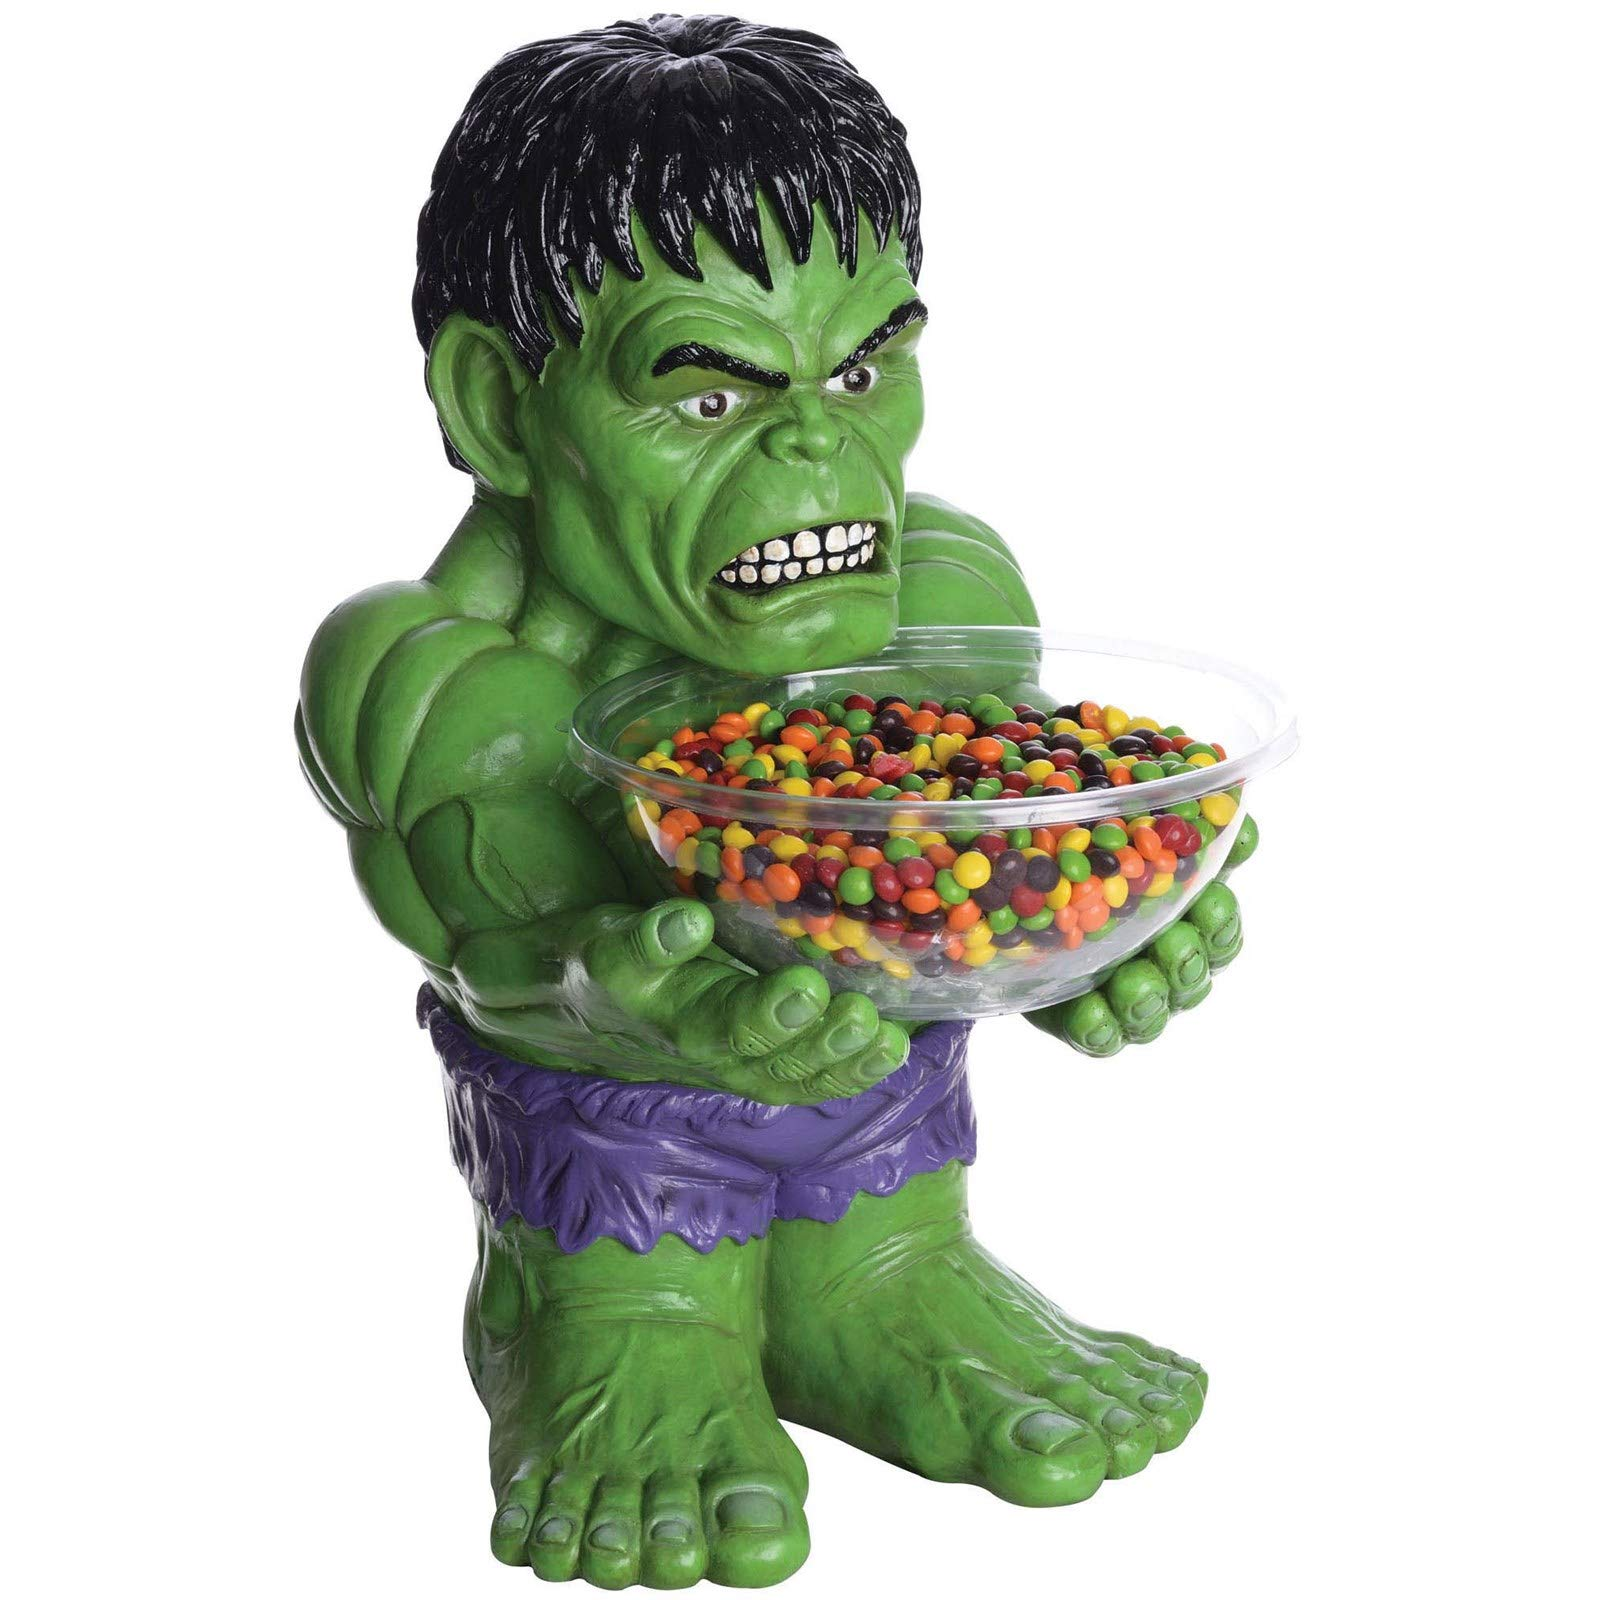 Plugtronics Hulk Candy Bowl Holder Halloween Decoration